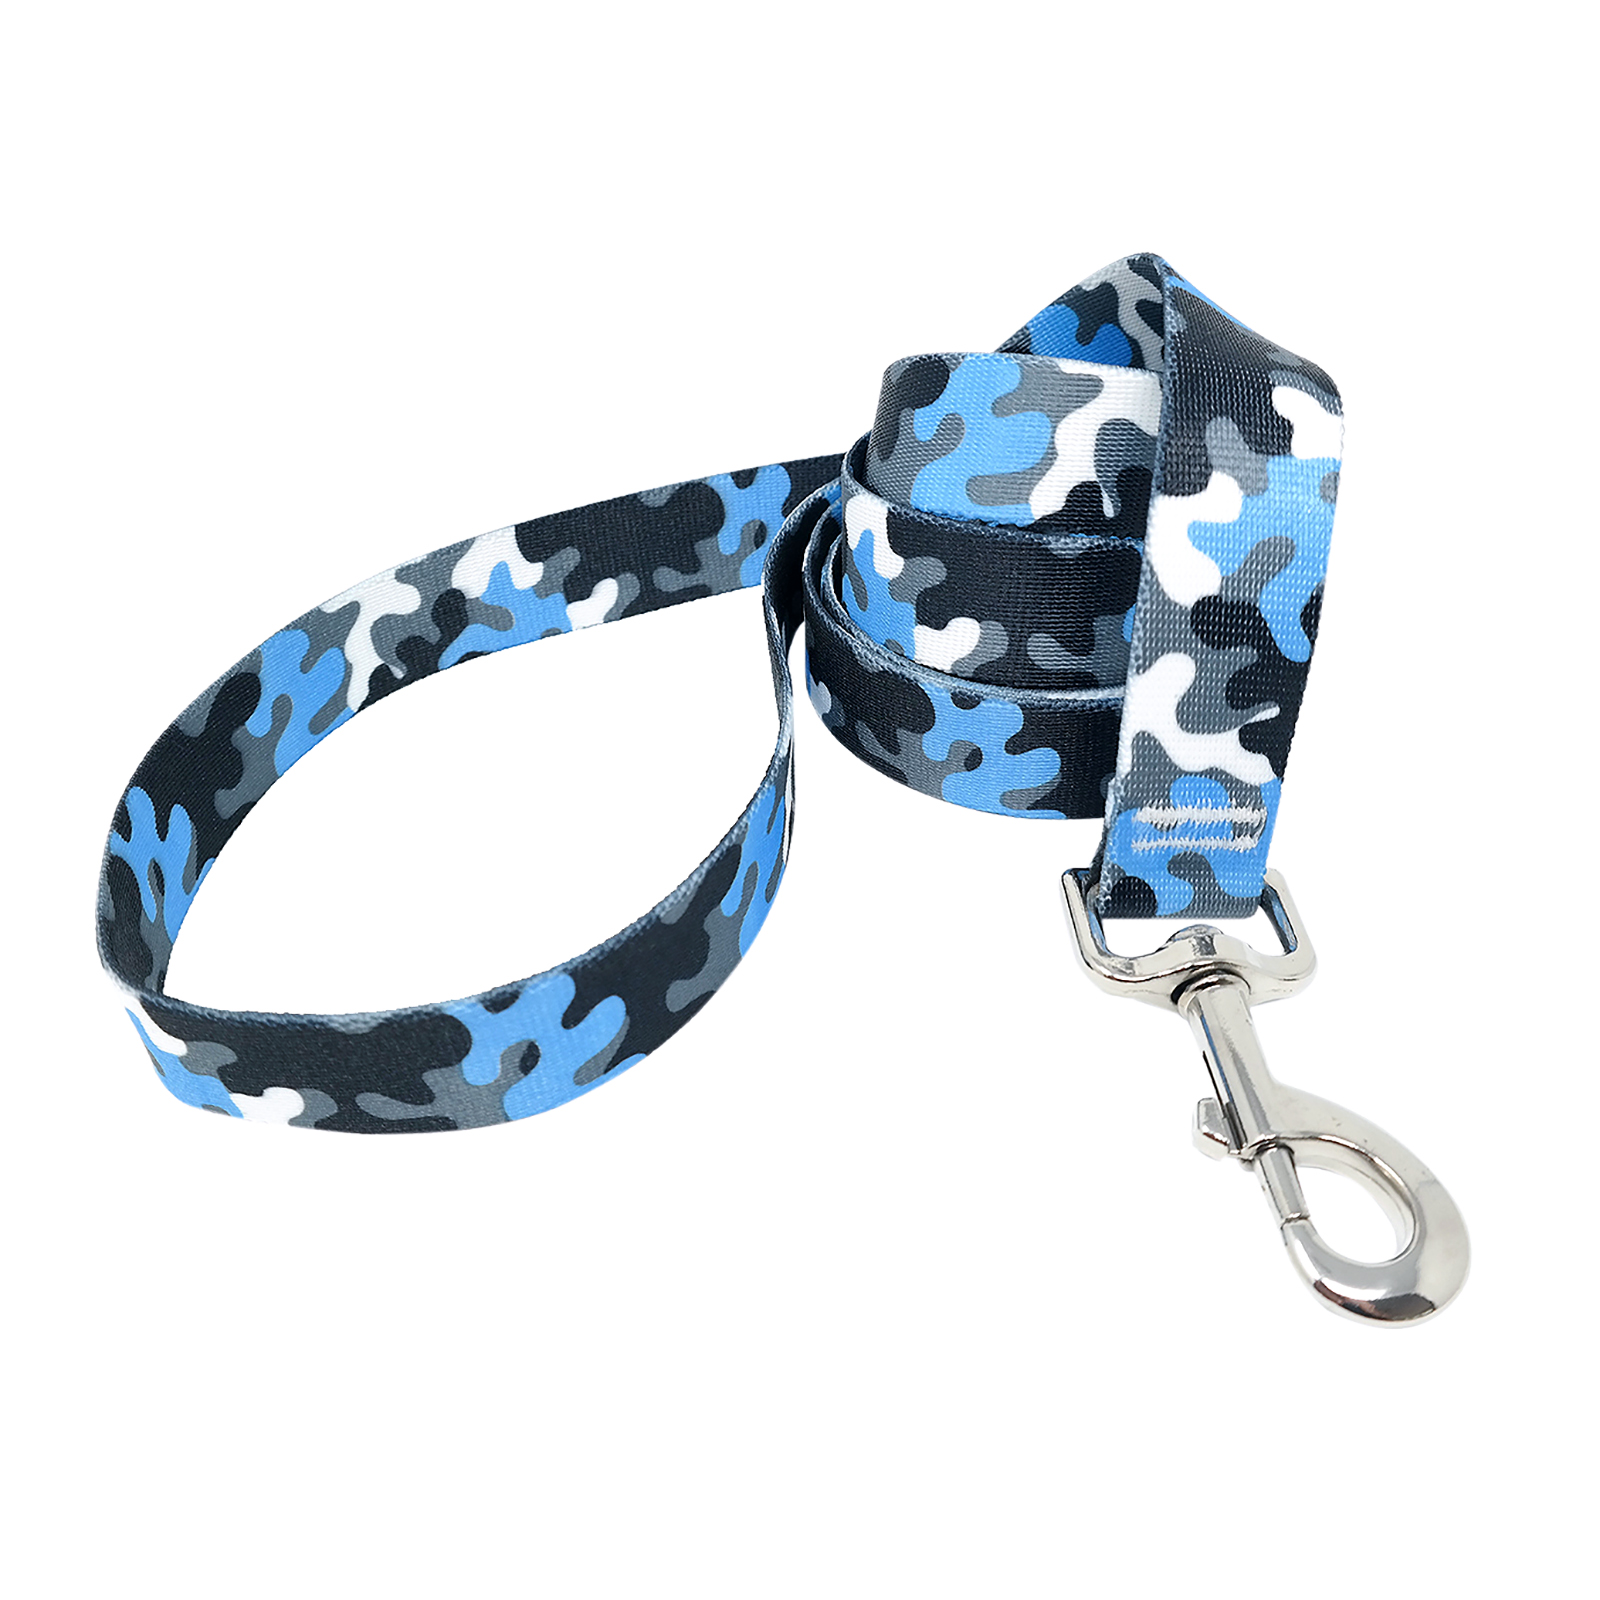 Light Blue & Black Camo Lead